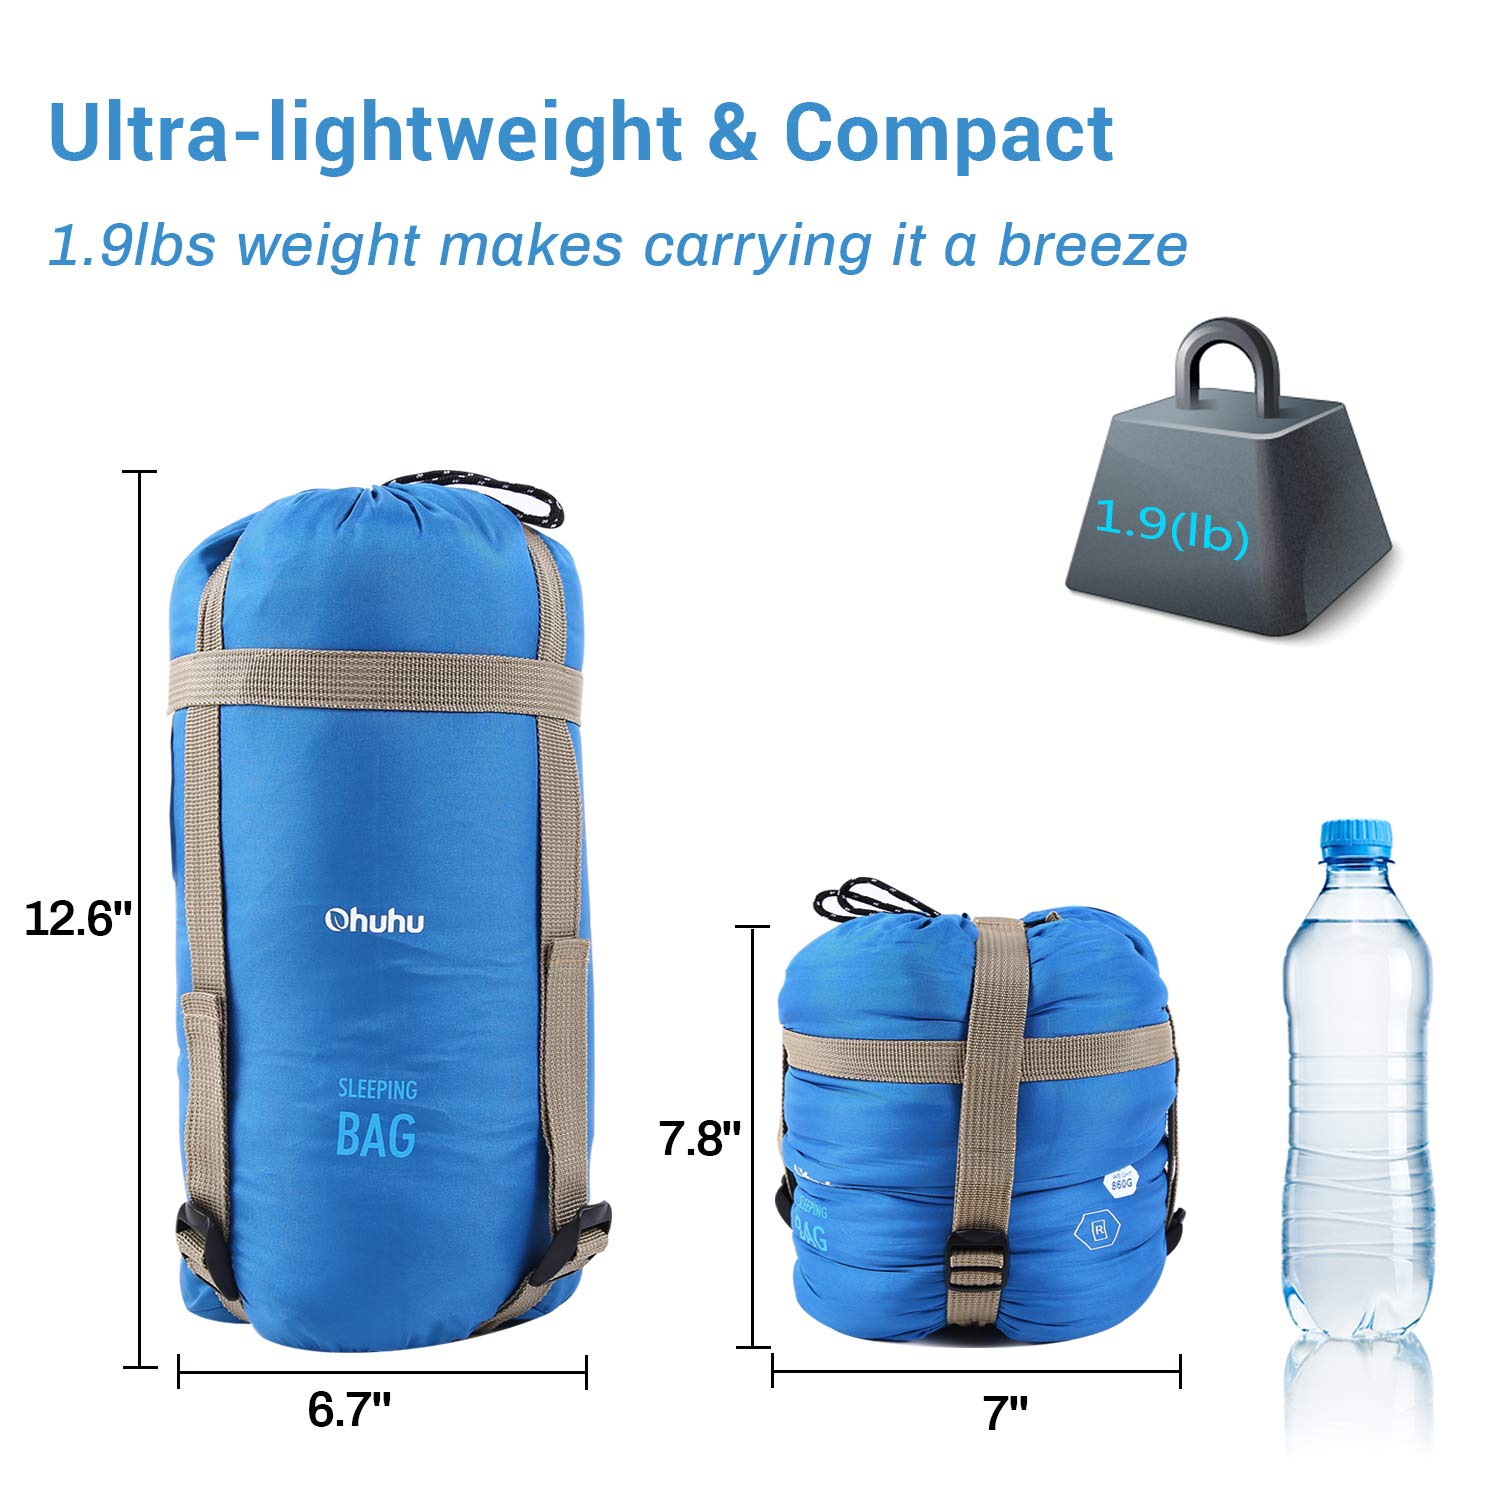 Ohuhu Warm Weather Sleeping bag 3 Season Lightweight Portable Sleeping bags Adult Kids Backpacking Sleeping bag with Carry Bag for Camping, Hiking, Backpacking and Outdoors 59℉-77℉